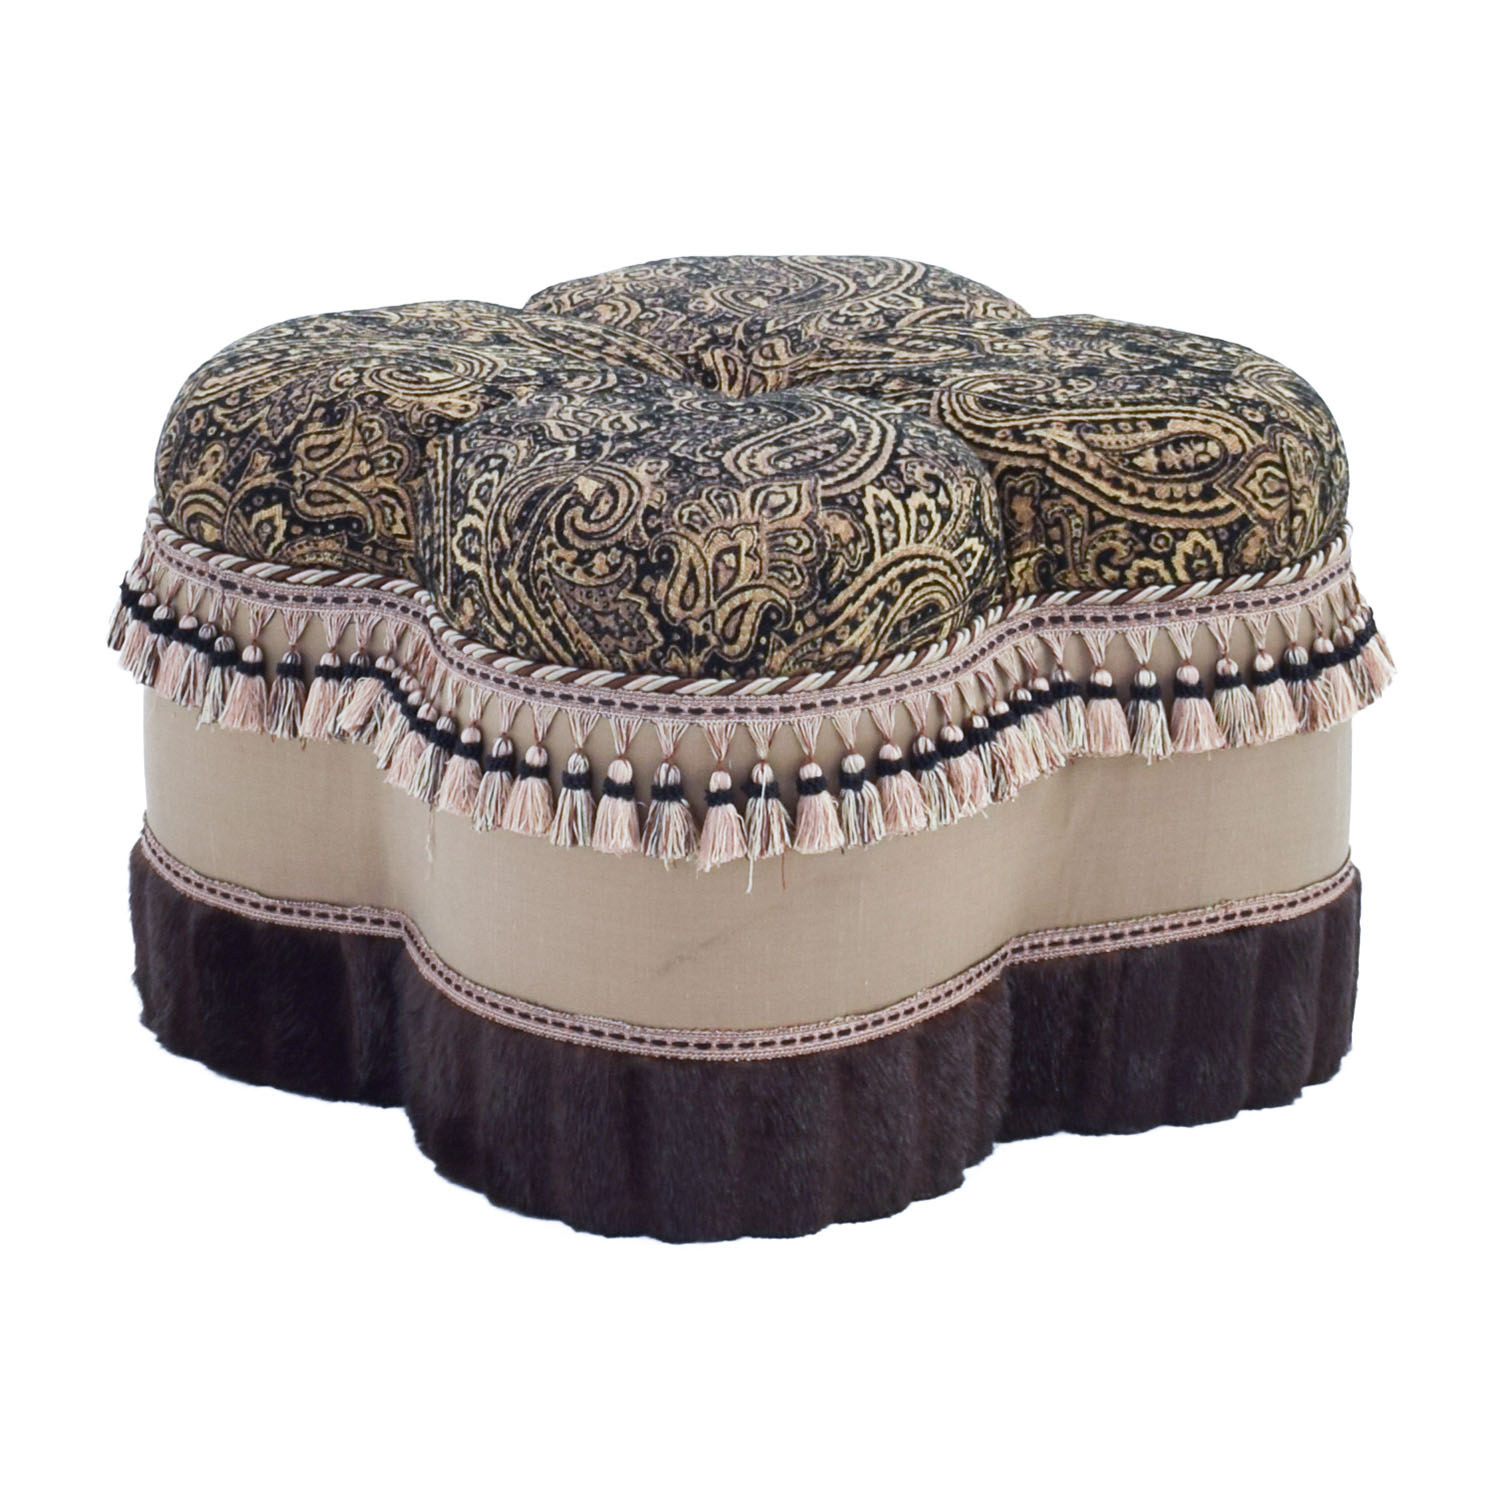 Astonishing 71 Off Bombay Company Bombay Co Paisley Faux Fur Ottoman Chairs Gmtry Best Dining Table And Chair Ideas Images Gmtryco